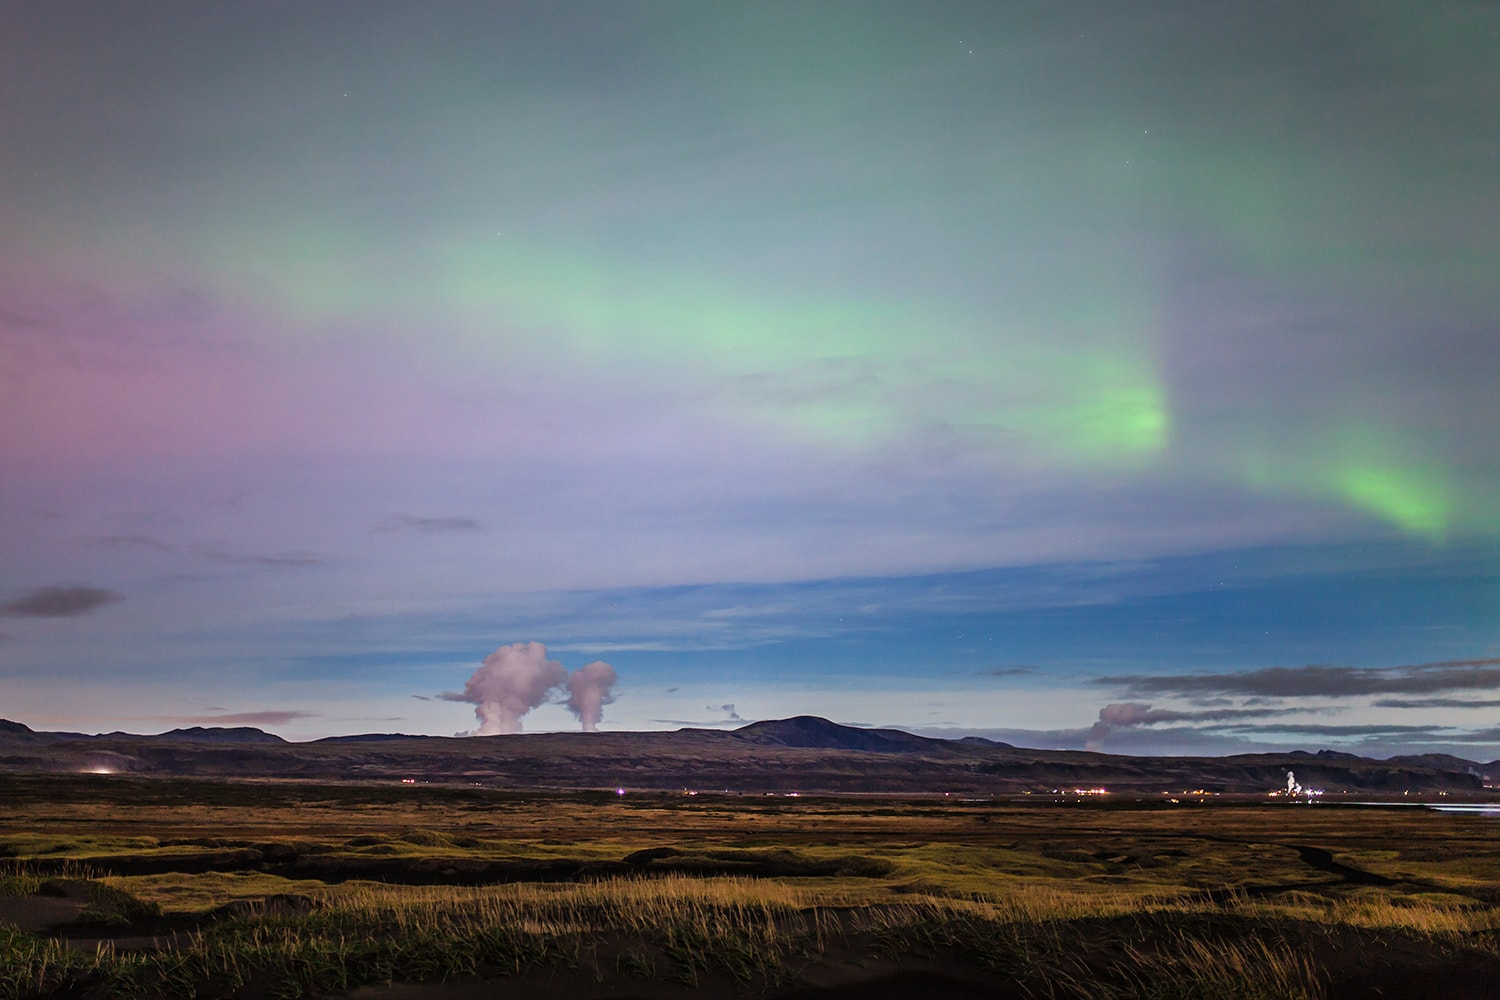 Northern lights and steam from a nearby geothermal area